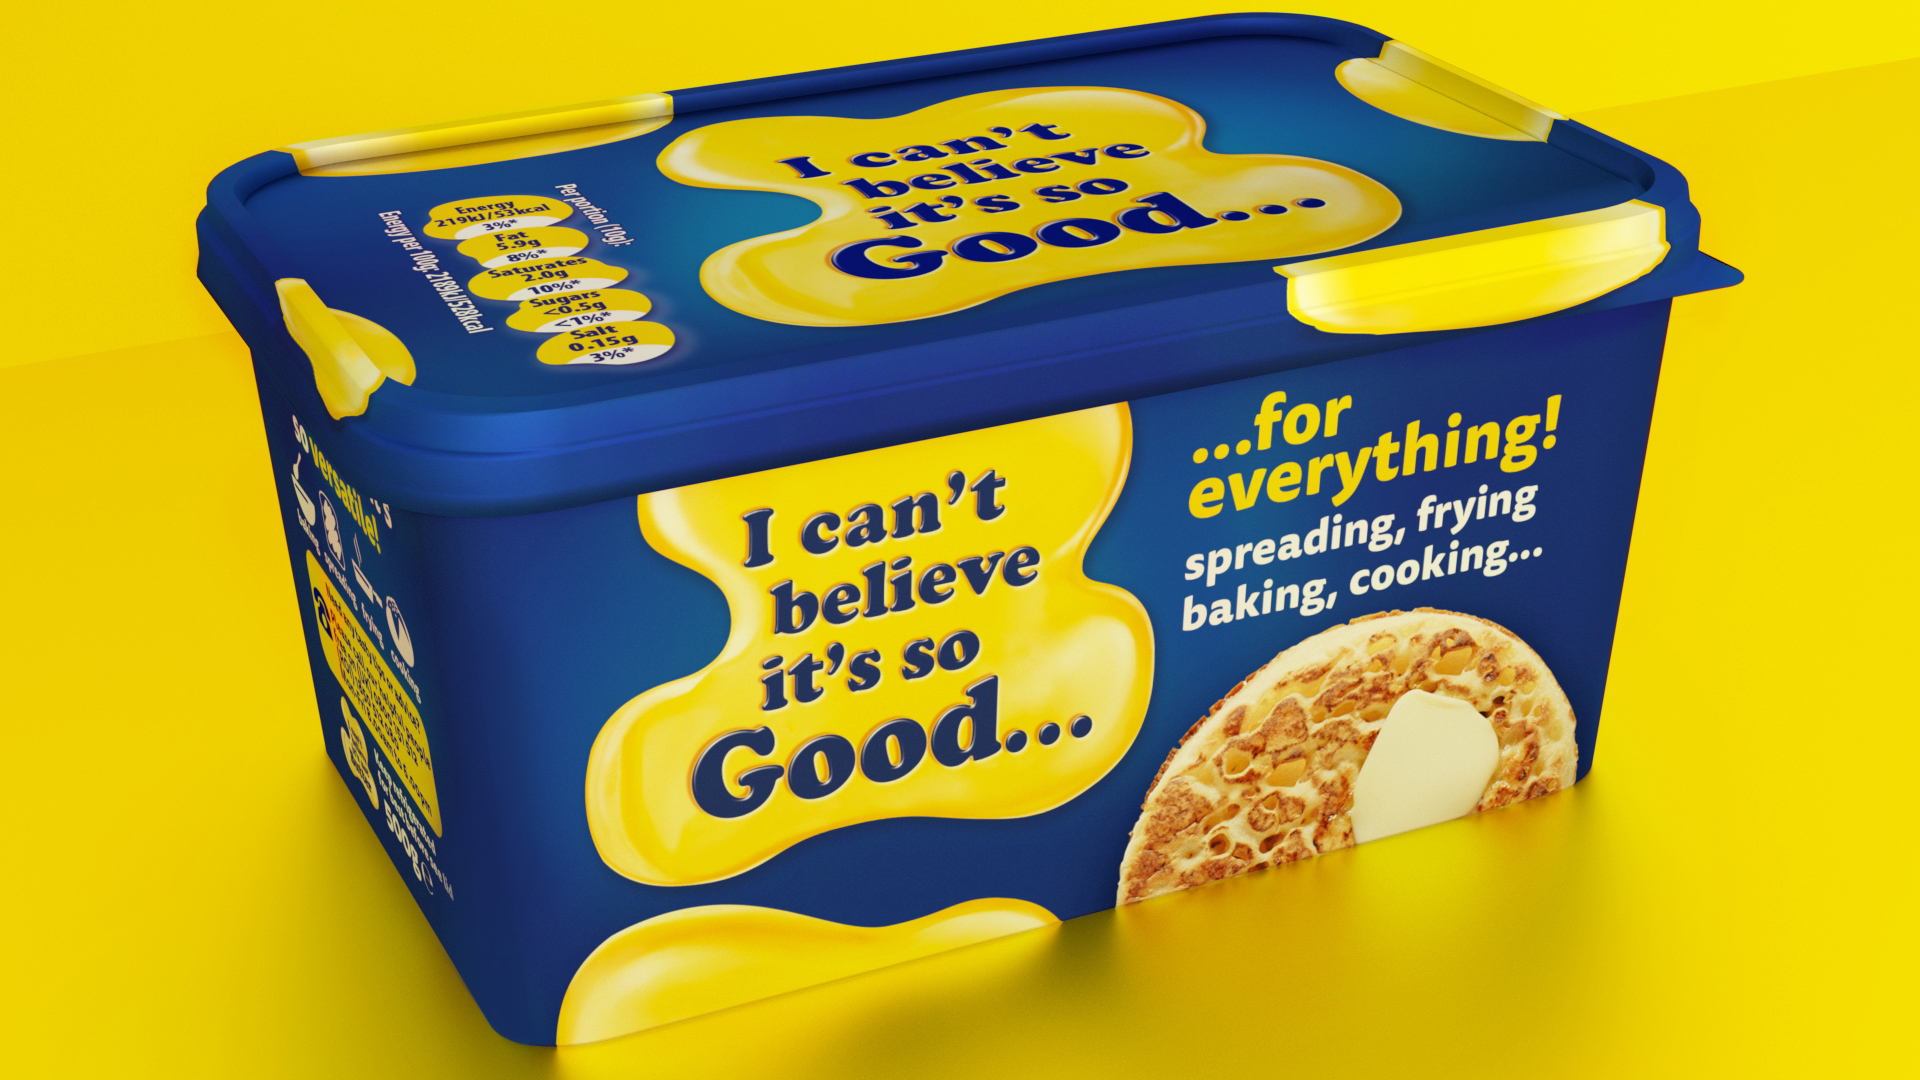 I can't believe its so good packaging design and branding by slice